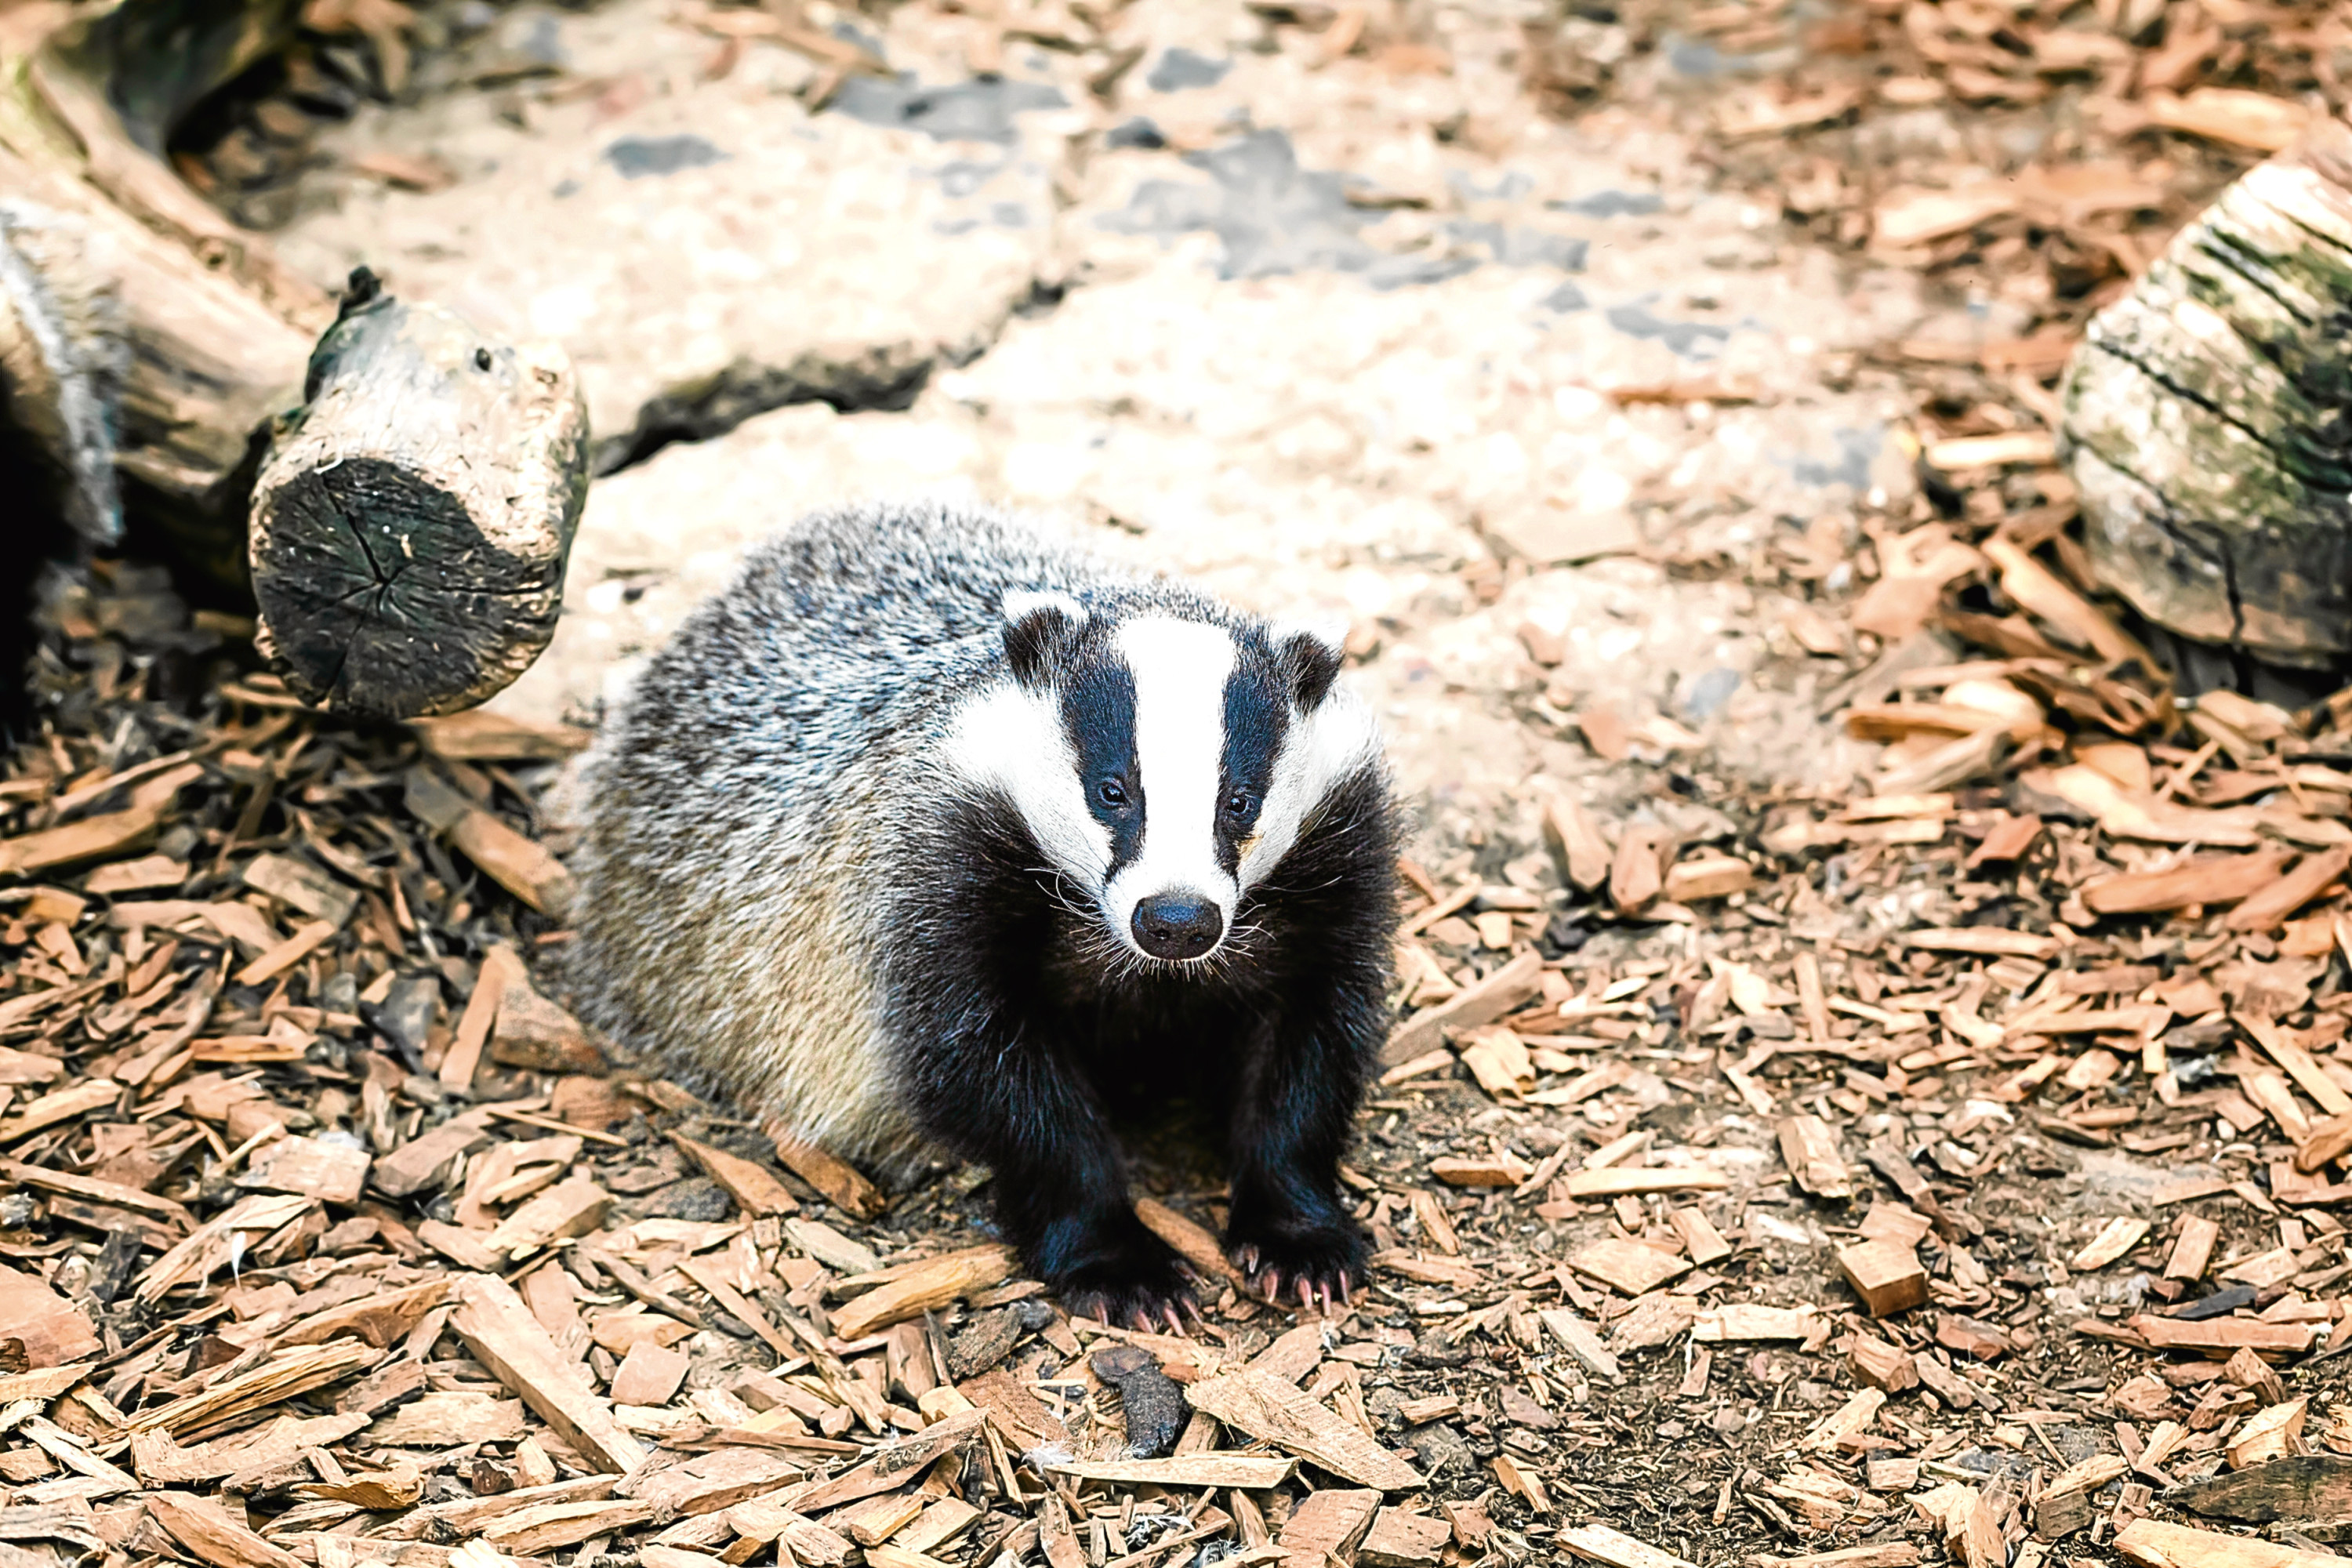 Badgers are treated appallingly by people, says Jim.